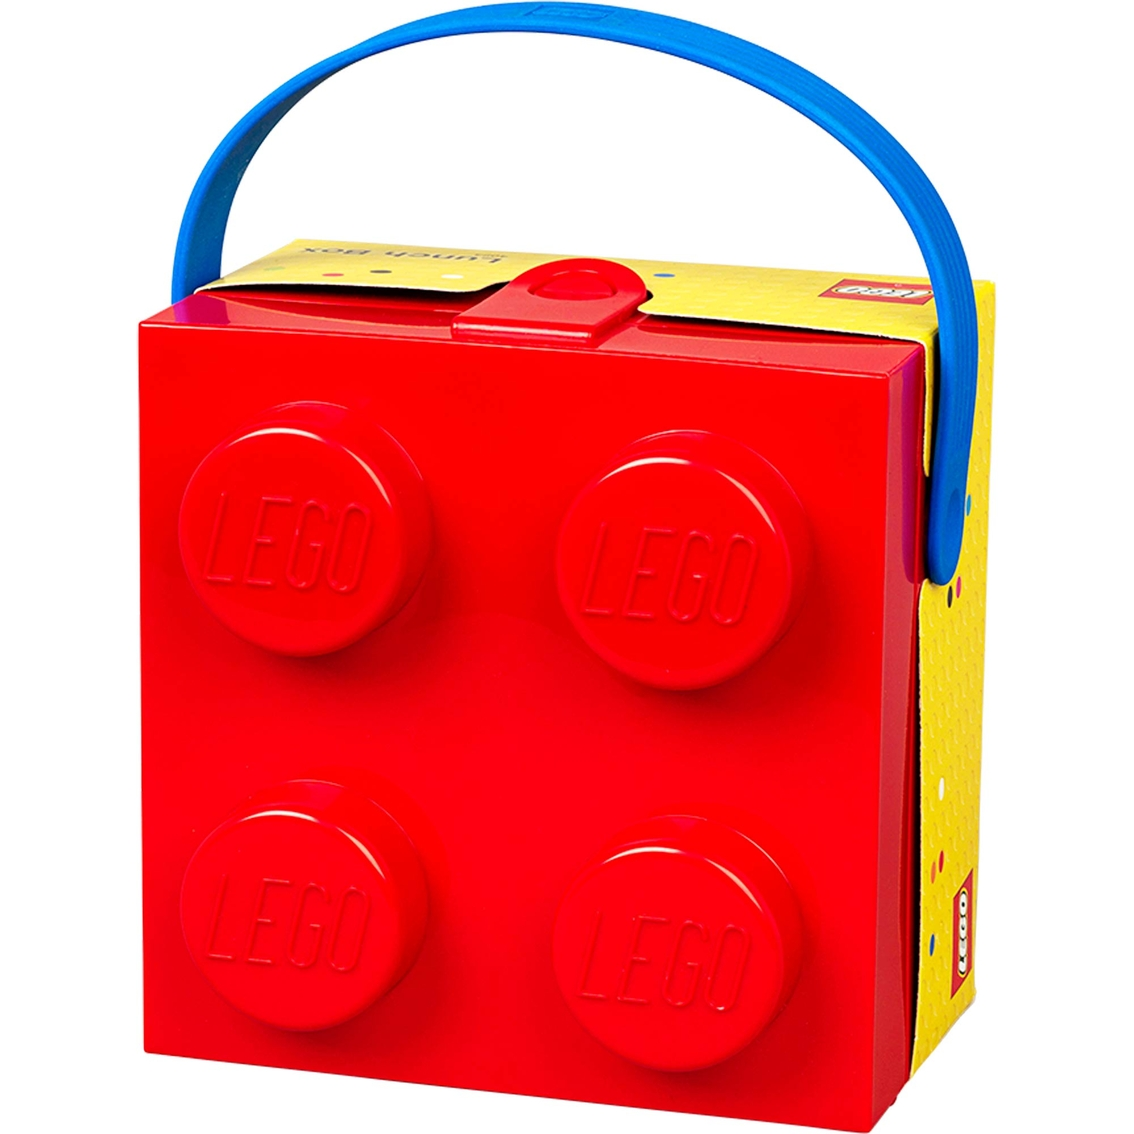 Lego Bricks & More Lunch Box System With Handle | Lego Bricks & More | Baby & Toys | Shop The ...